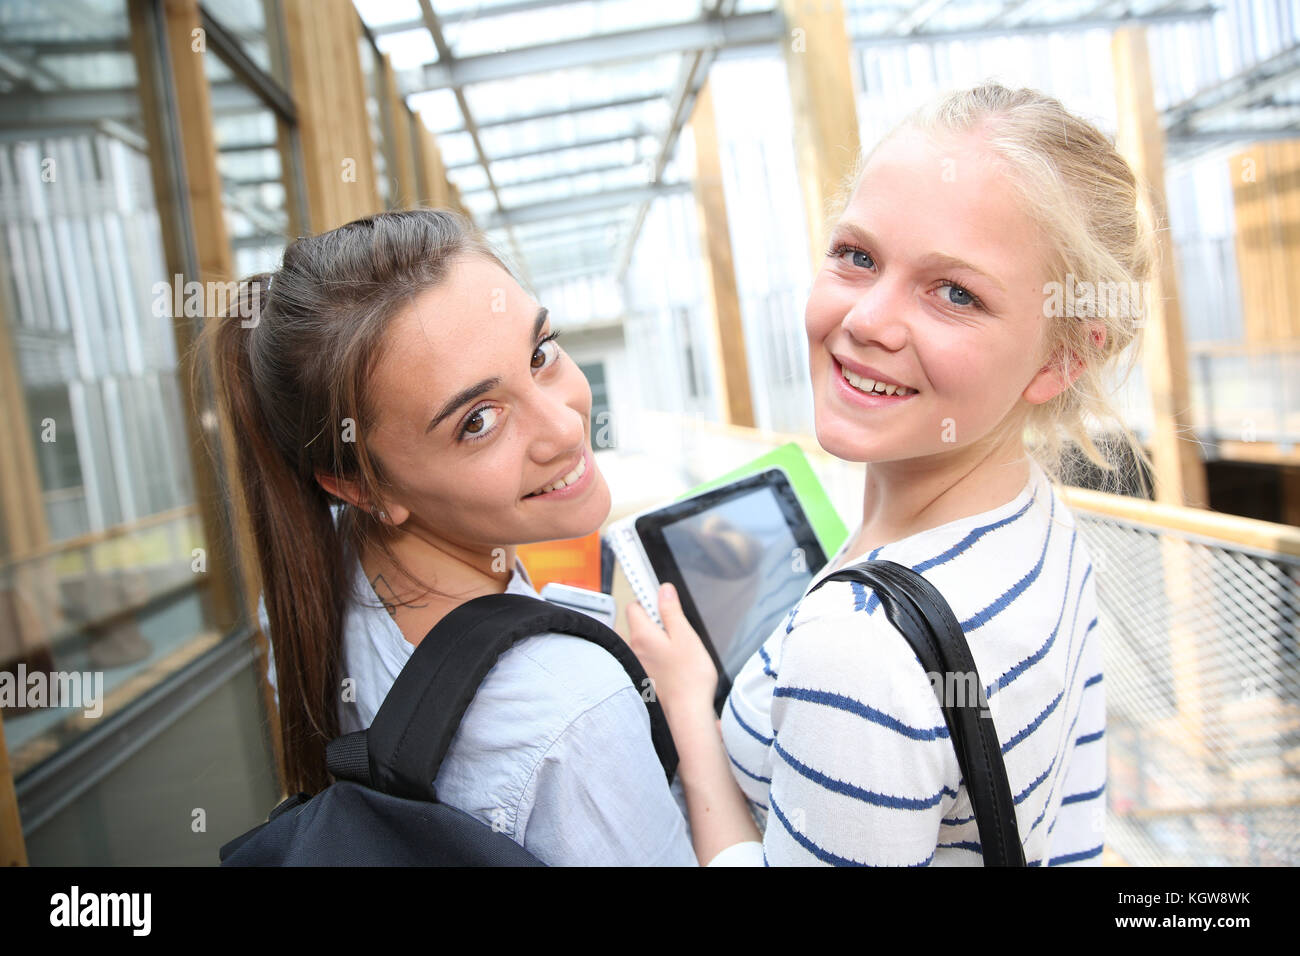 Cheerful teenage girls using tablet at school - Stock Image